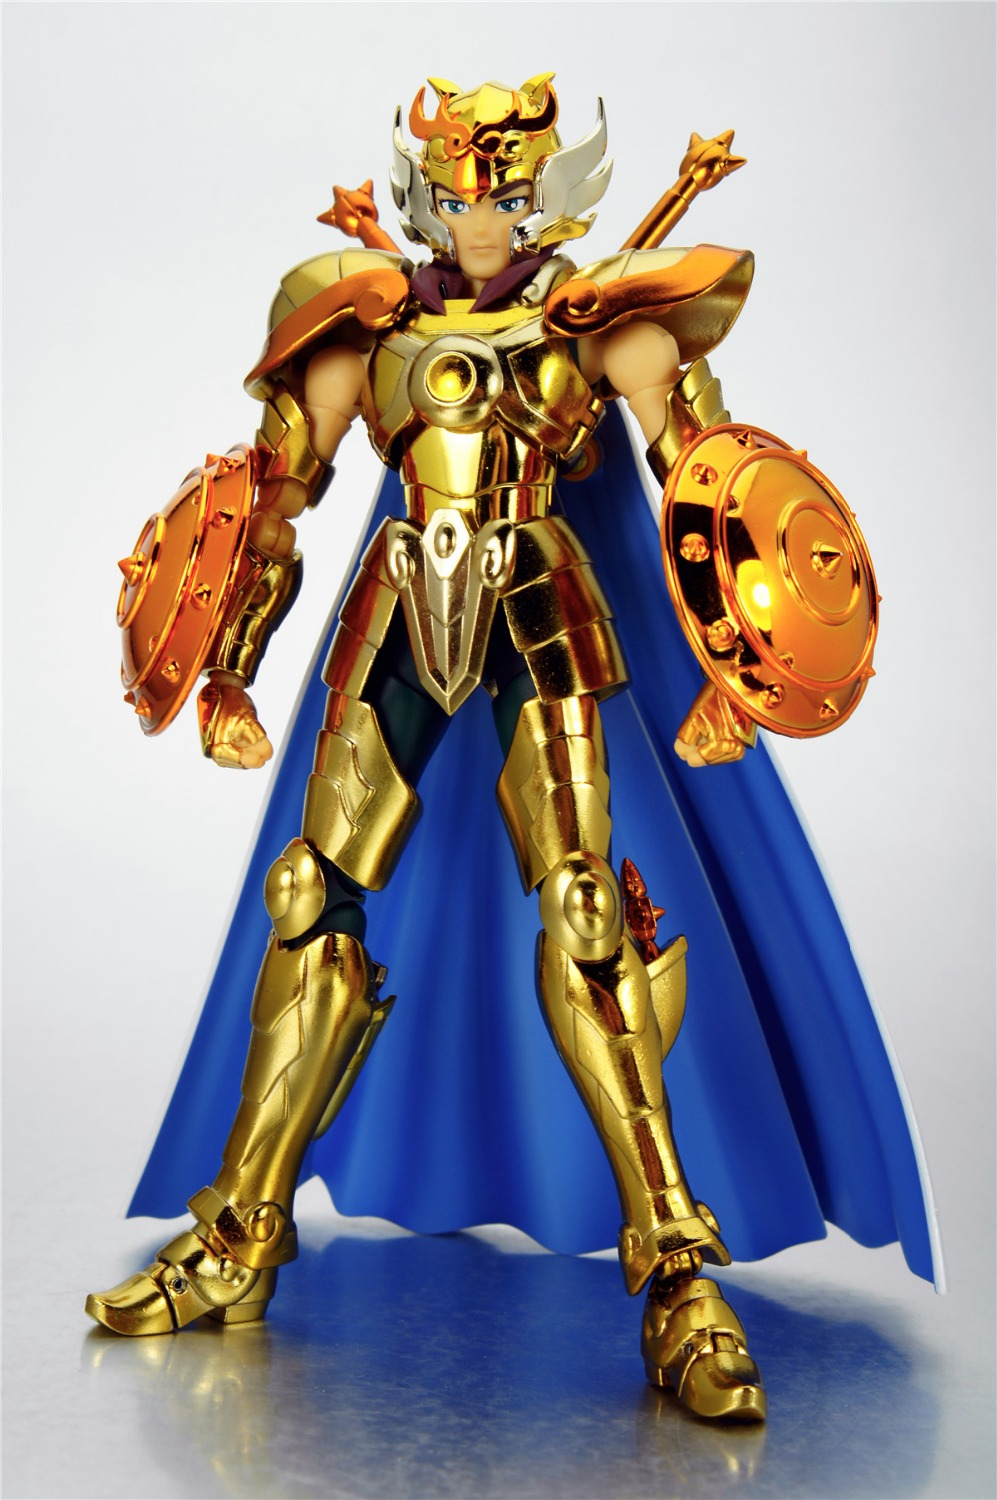 IN STOCK CS Overspeed Ex 2.0 Saint Seiya Libra Dohko EX Myth Cloth Metal Armor Action Figure Toy cmt aurora model cs model saint seiya oce ex libra dohkor action figure cloth myth metal armor